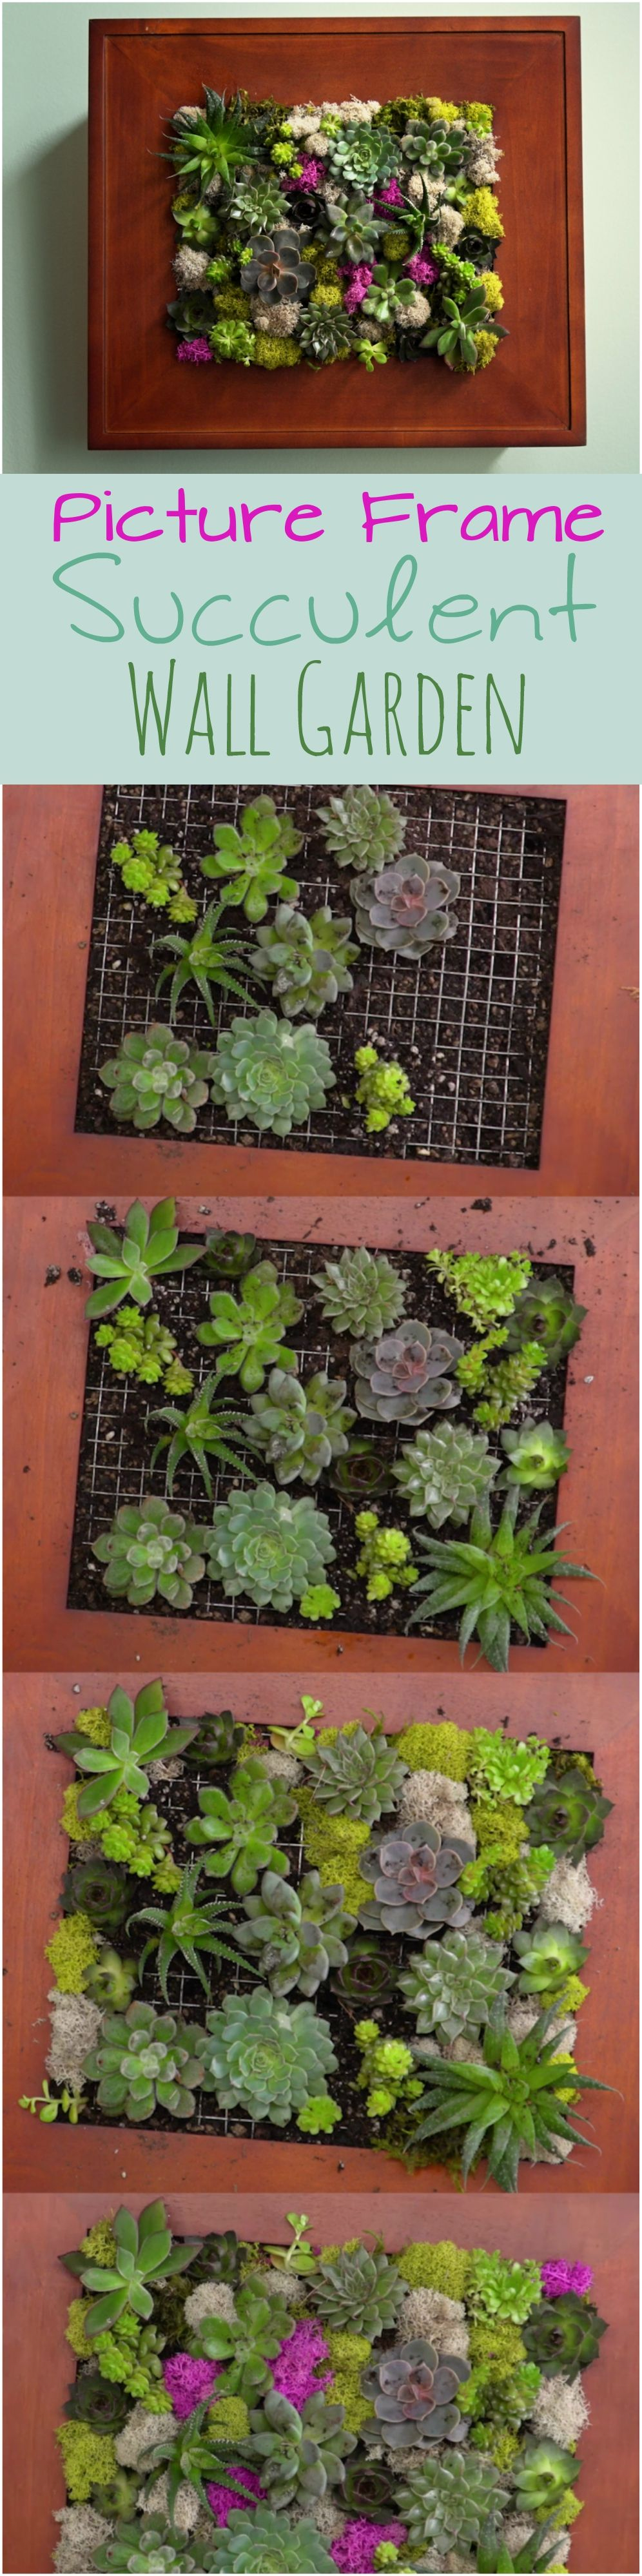 Create your own picture frame planter blooming